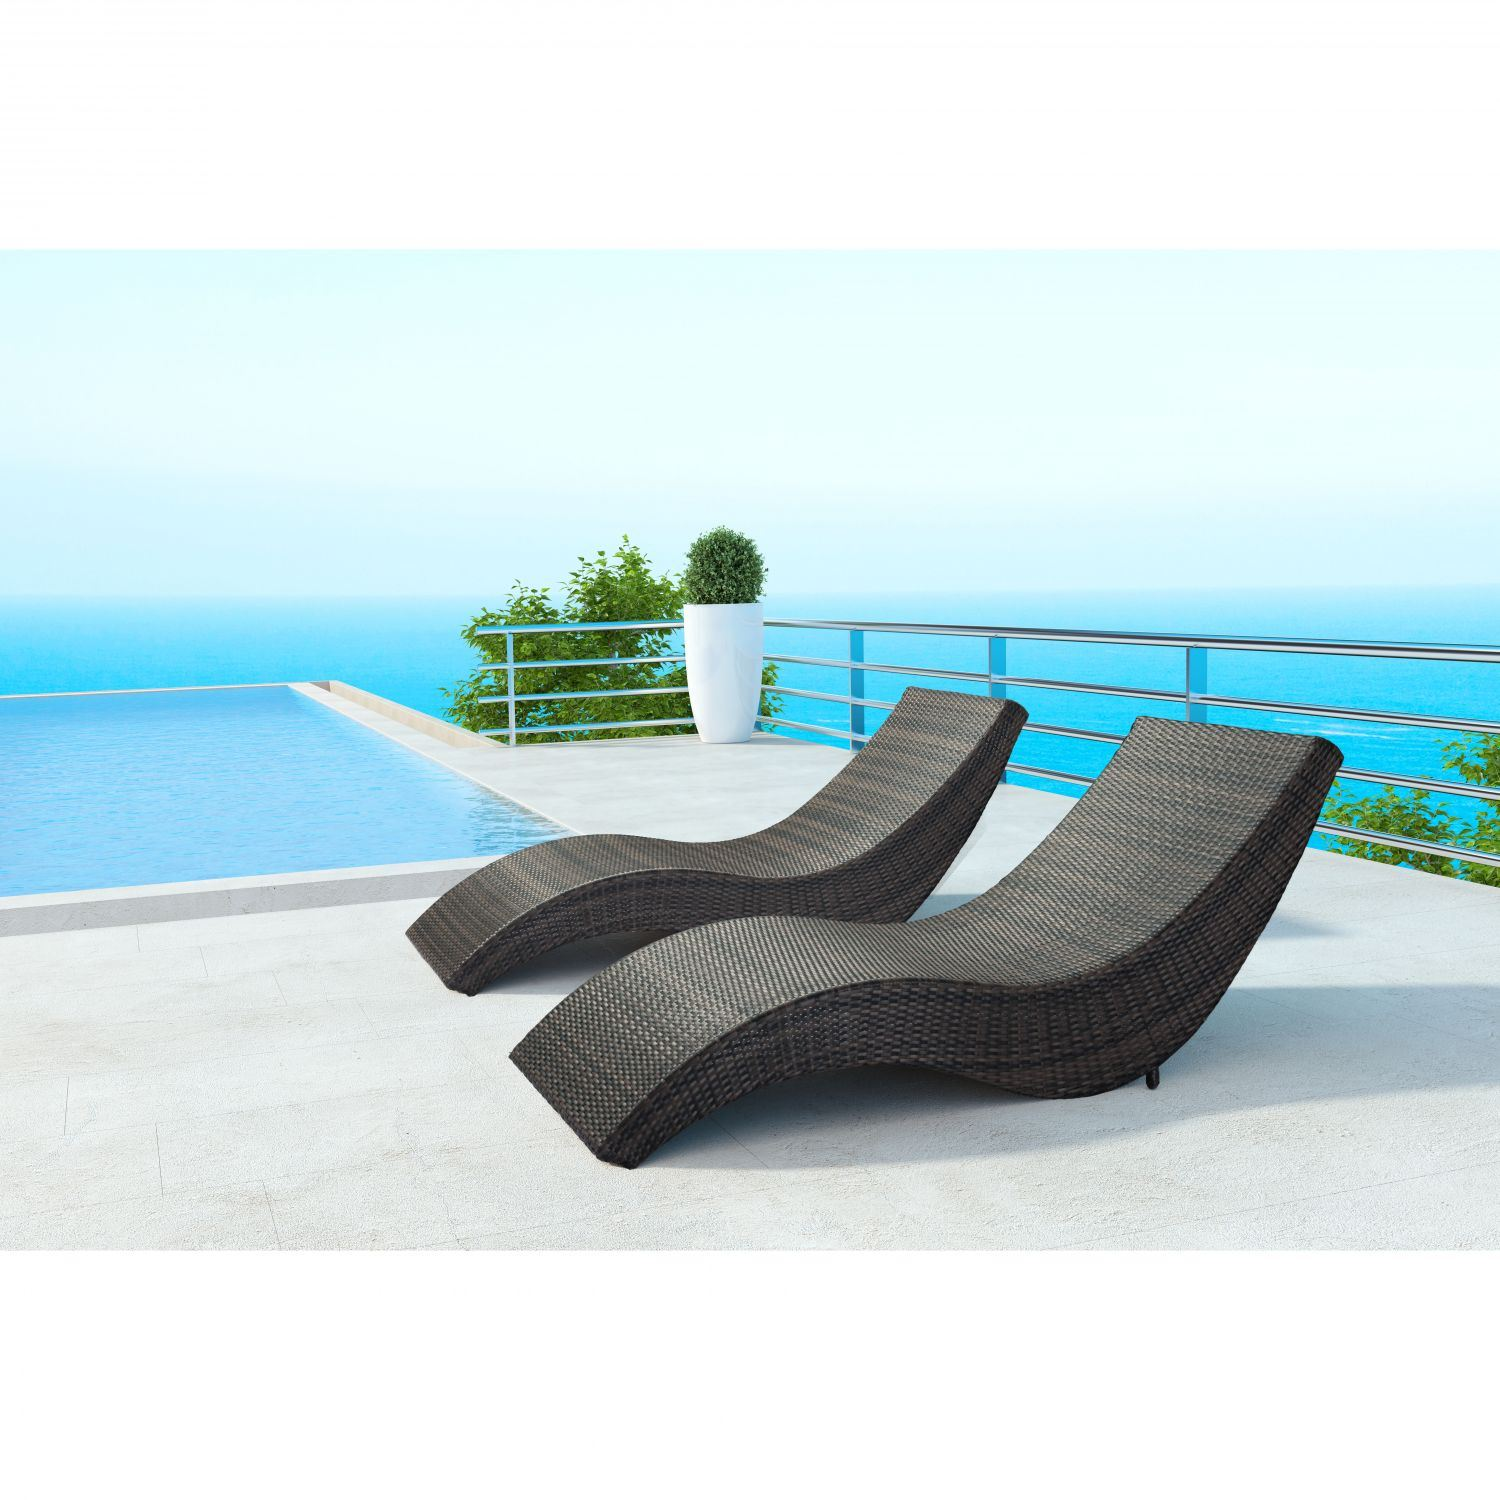 Hassleholtz beach chaise lounge brown 703839 zuo modern for Beach chaise lounger